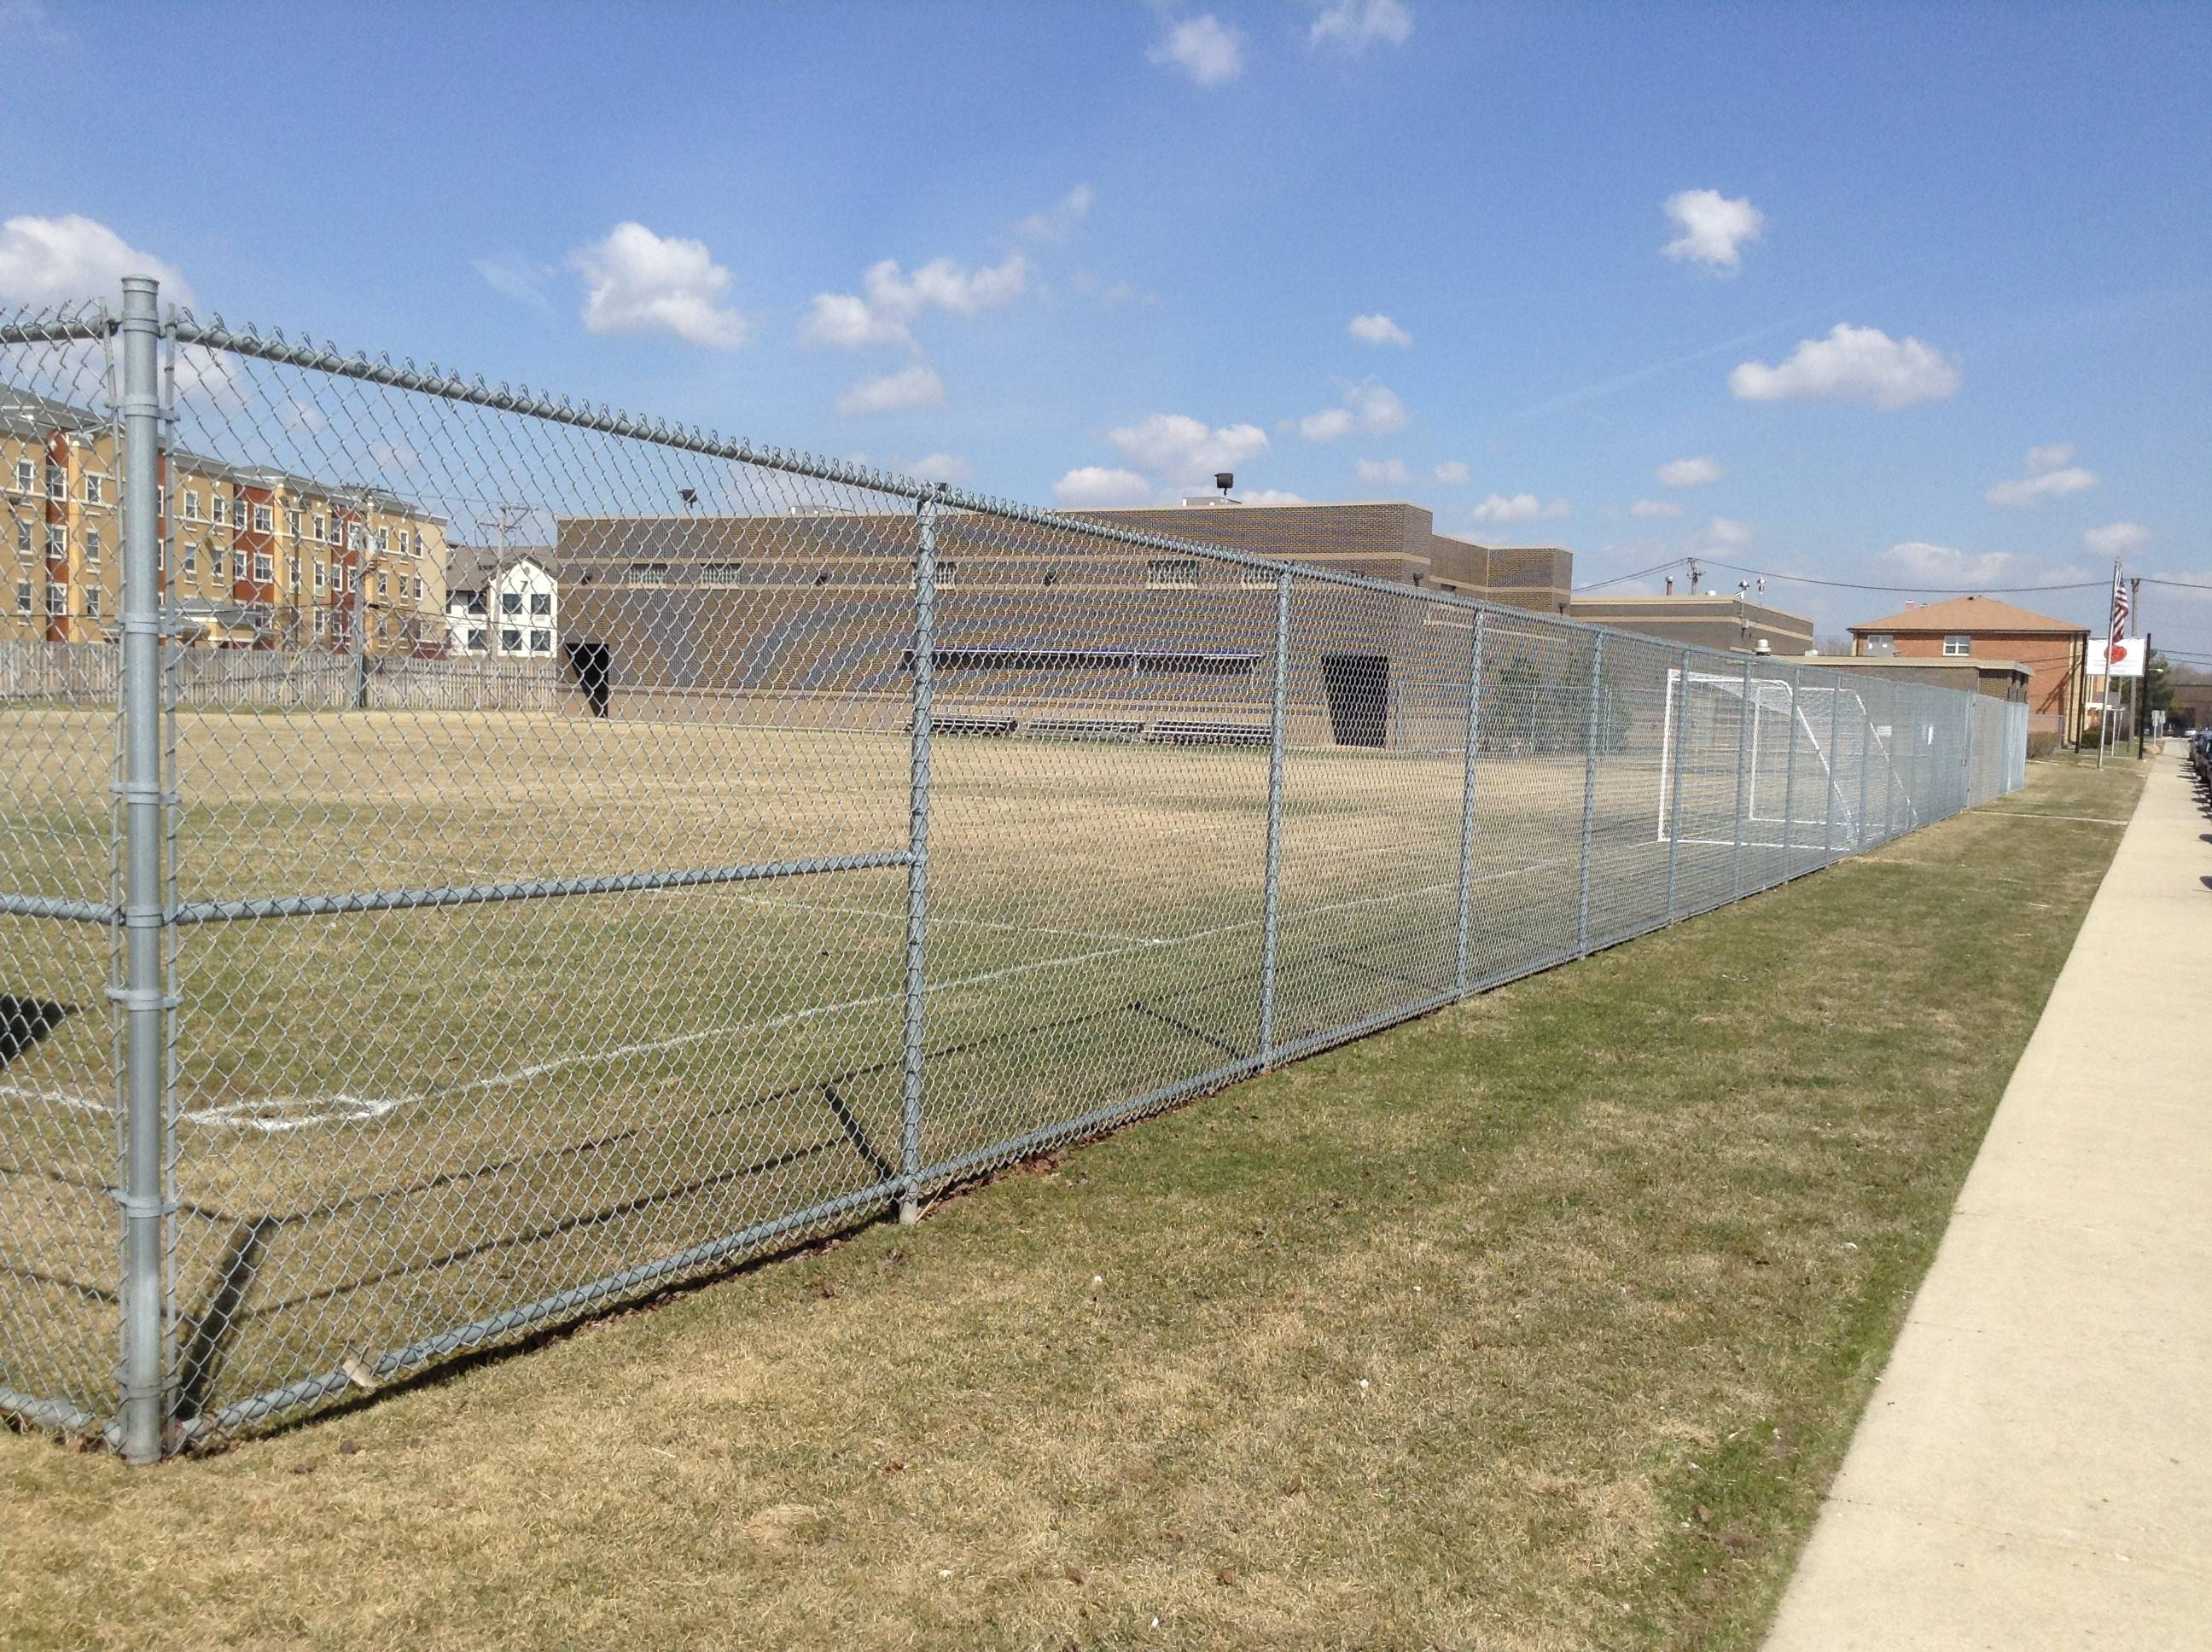 The village of Rosemont has received a $176,800 grant to help pay for artificial field turf on a grass field next to the Barry Recreational Center.